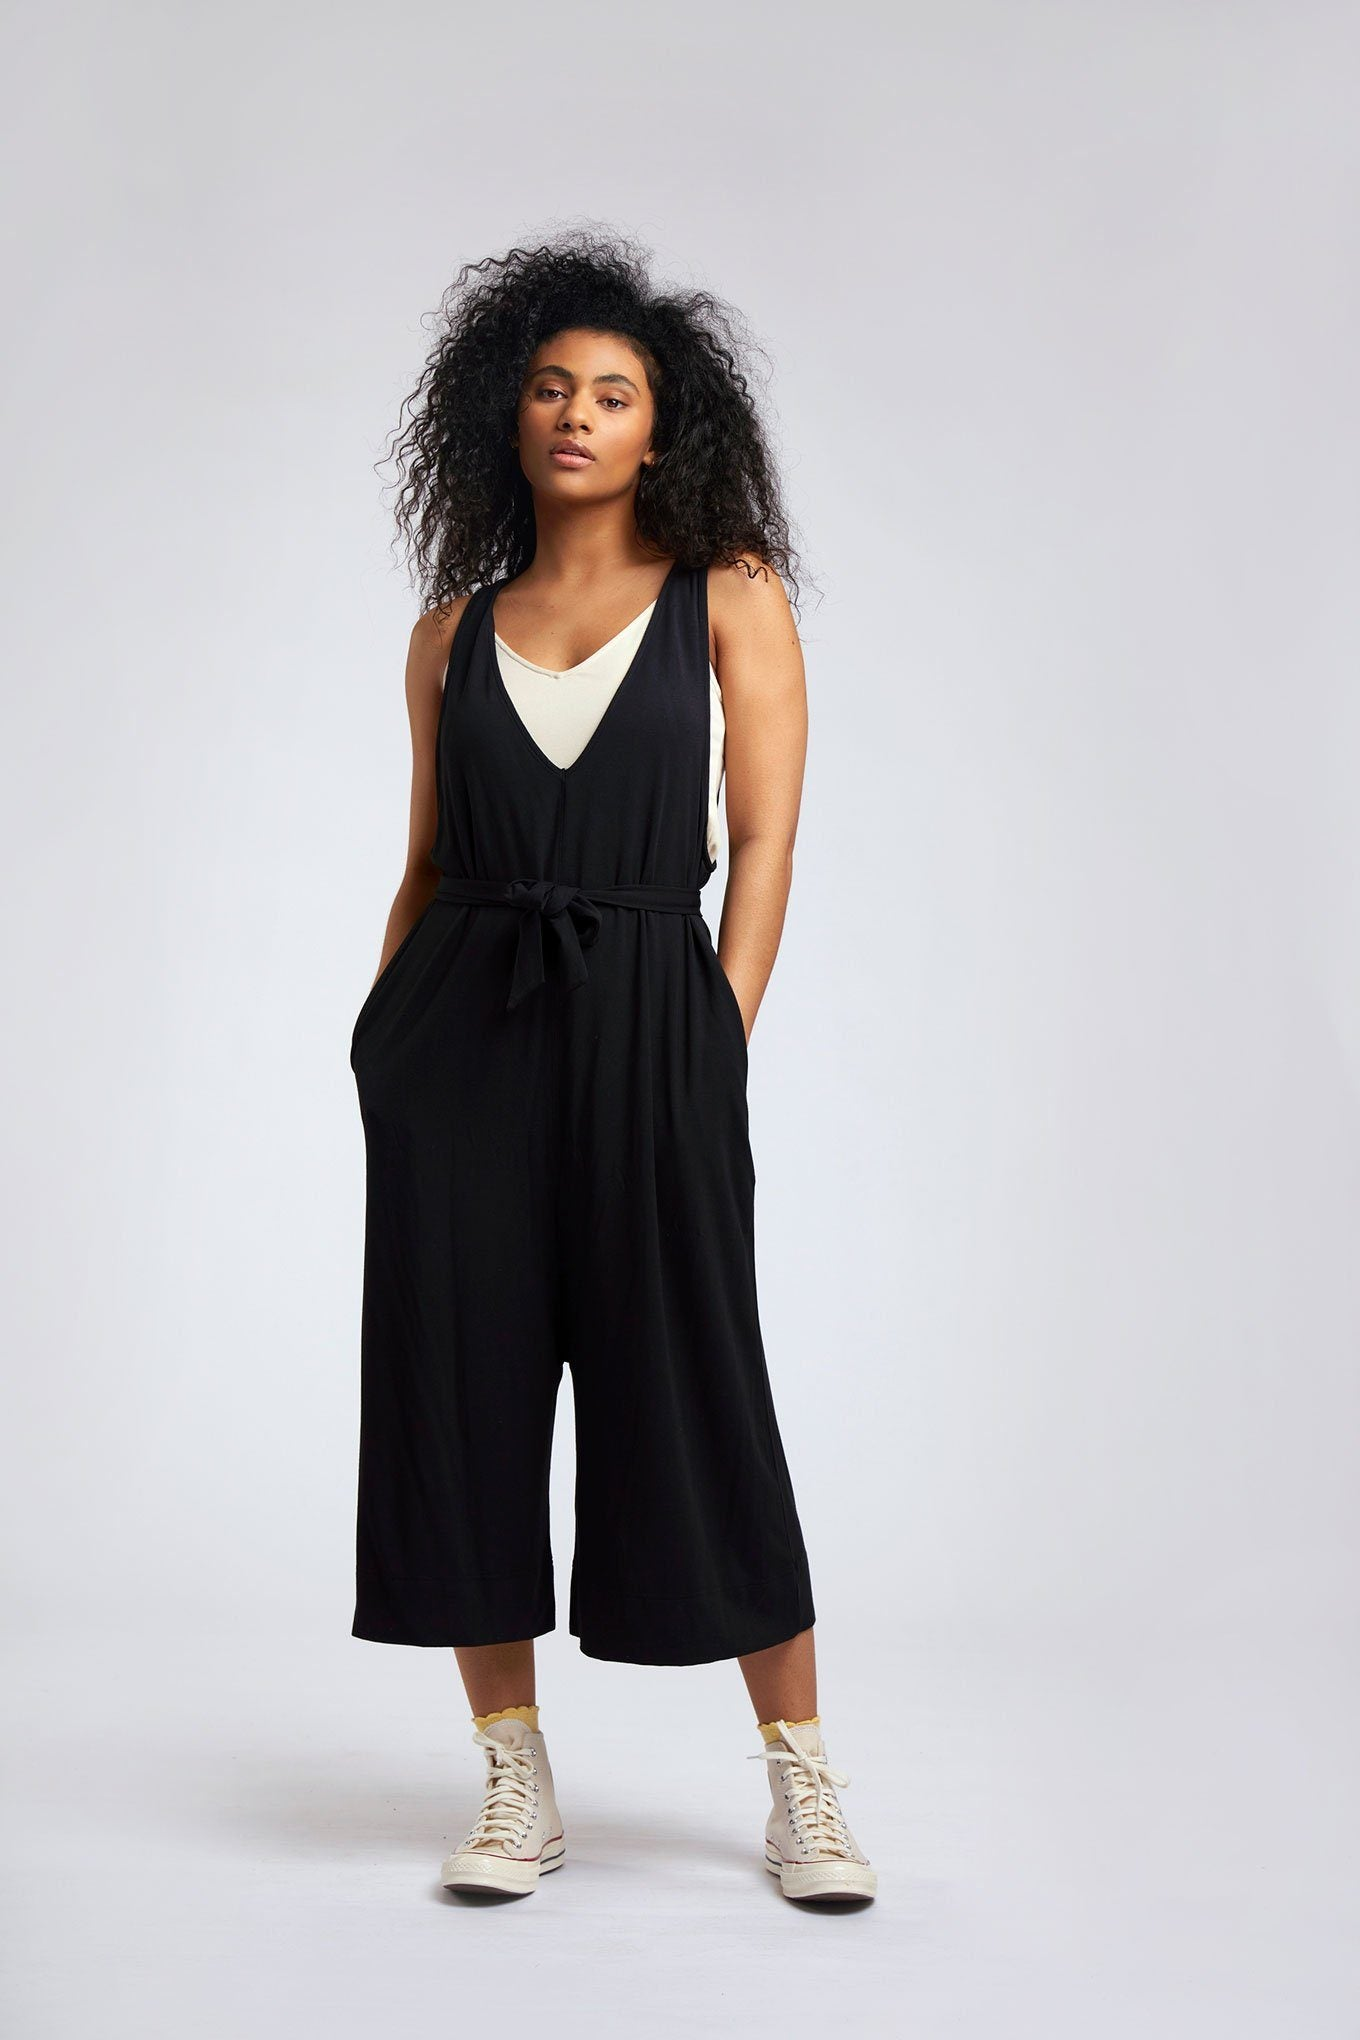 Jumpsuit - MOLLIE Modal Jumpsuit Black